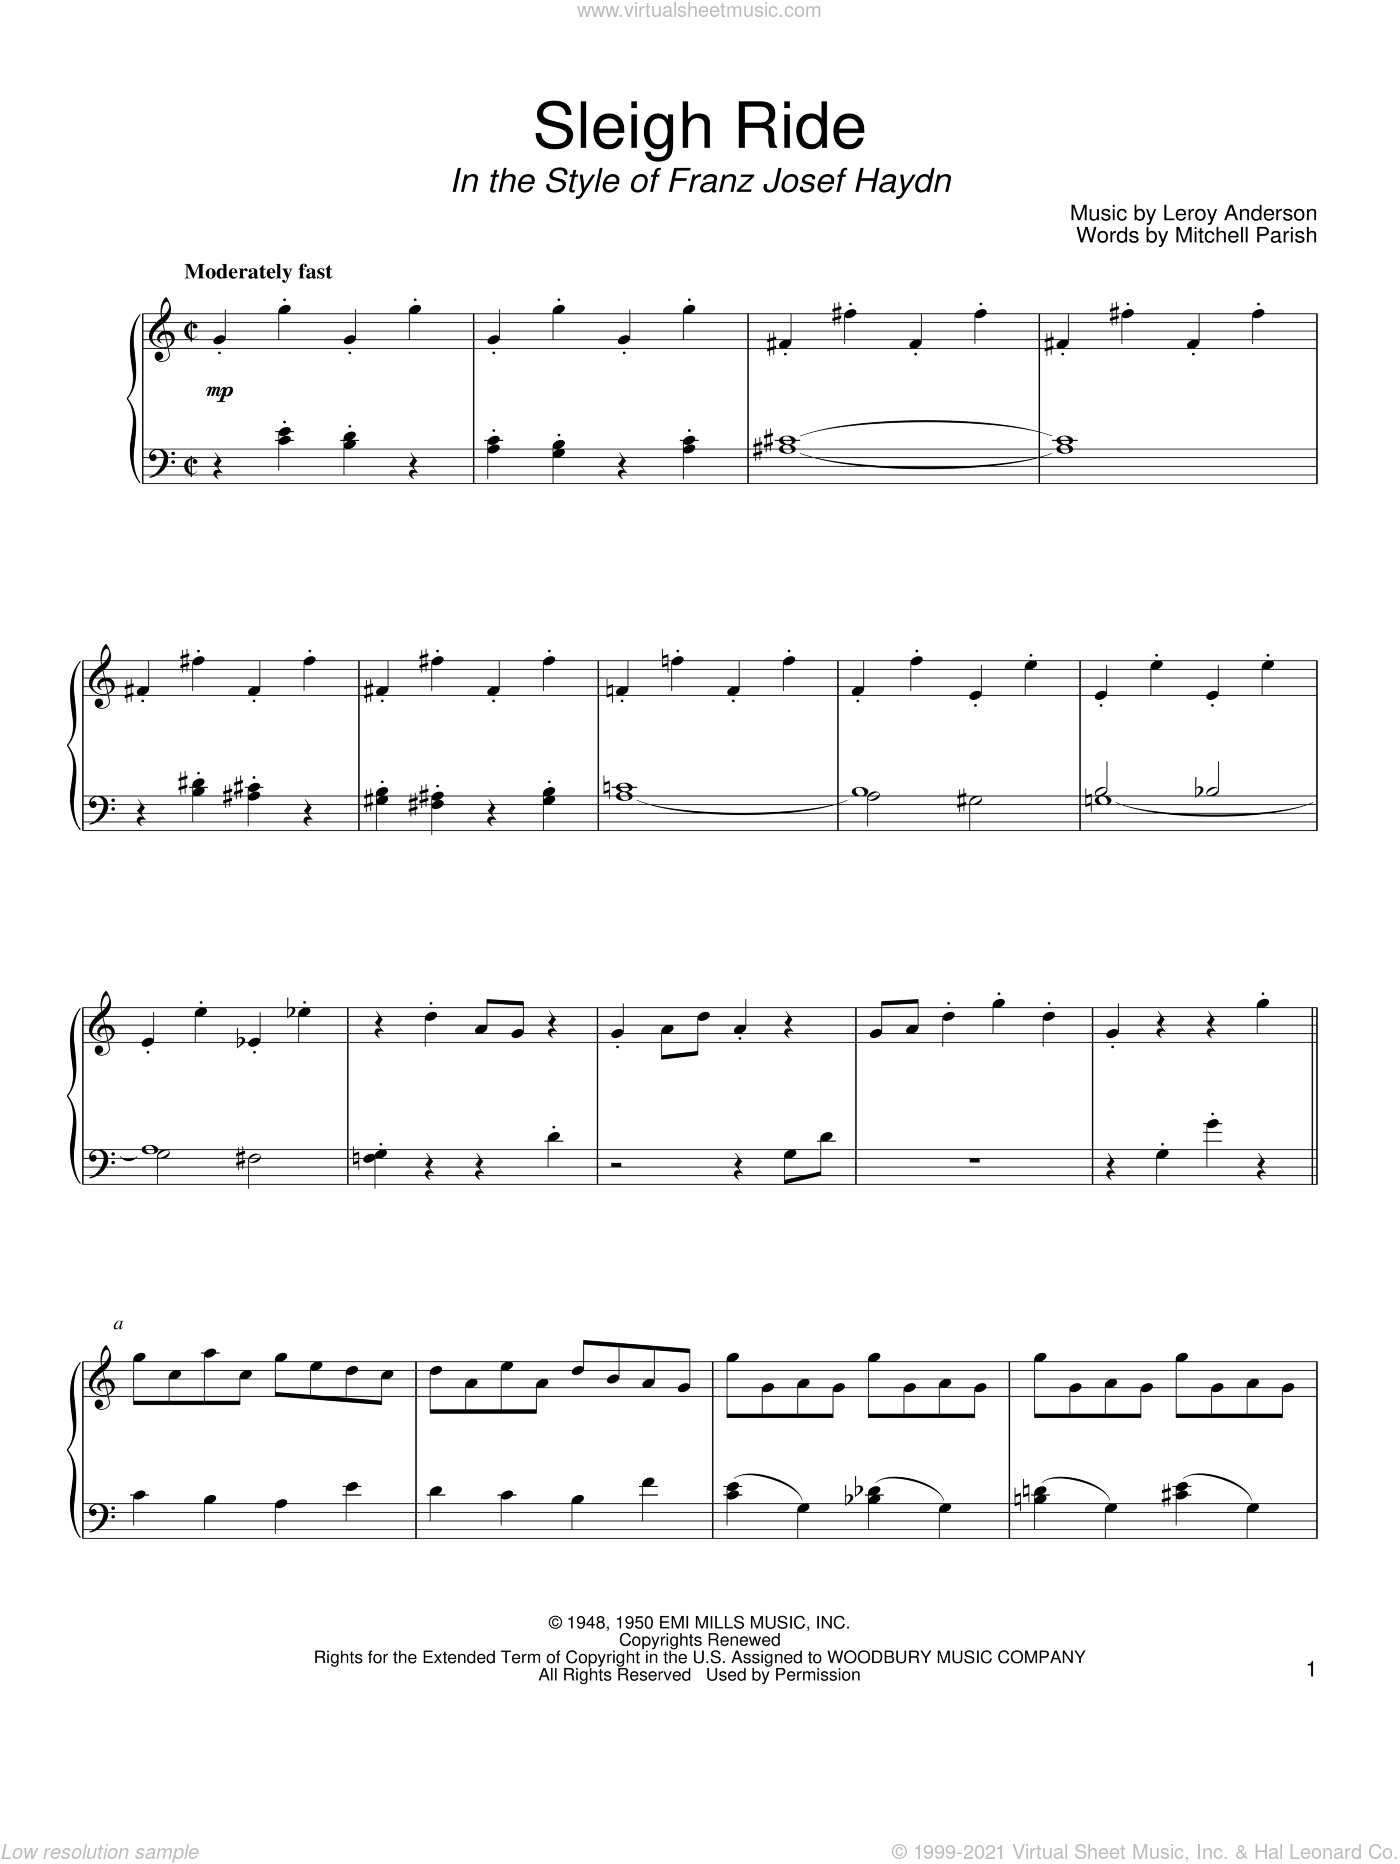 Sleigh Ride sheet music for piano solo by Leroy Anderson, David Pearl and Mitchell Parish, intermediate. Score Image Preview.